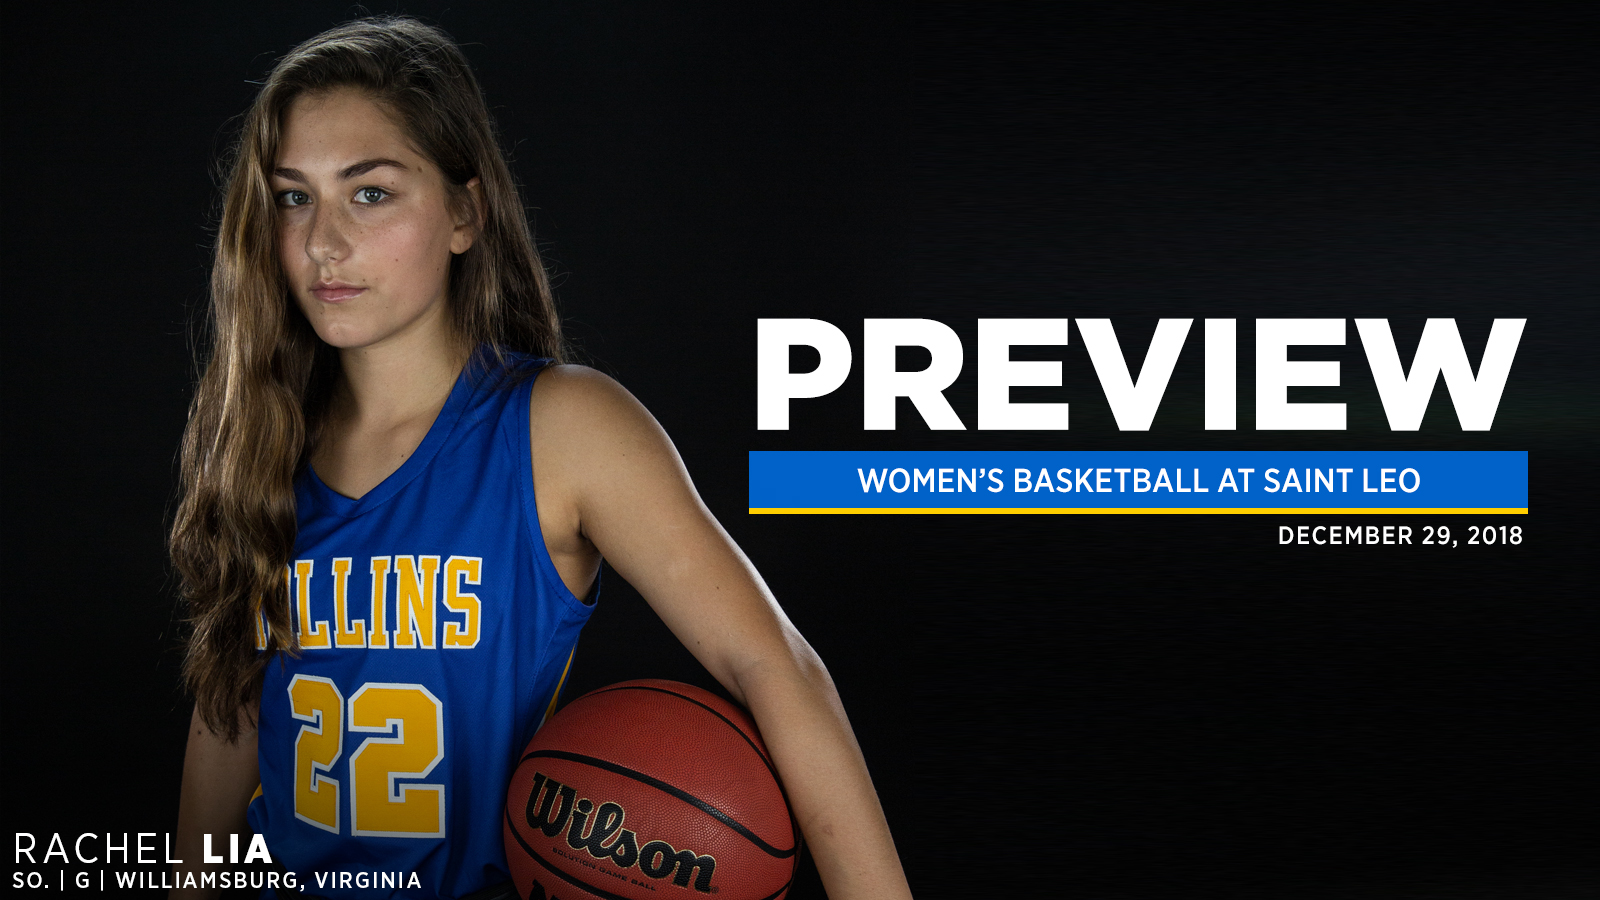 PREVIEW: Rollins Travels to Saint Leo Saturday